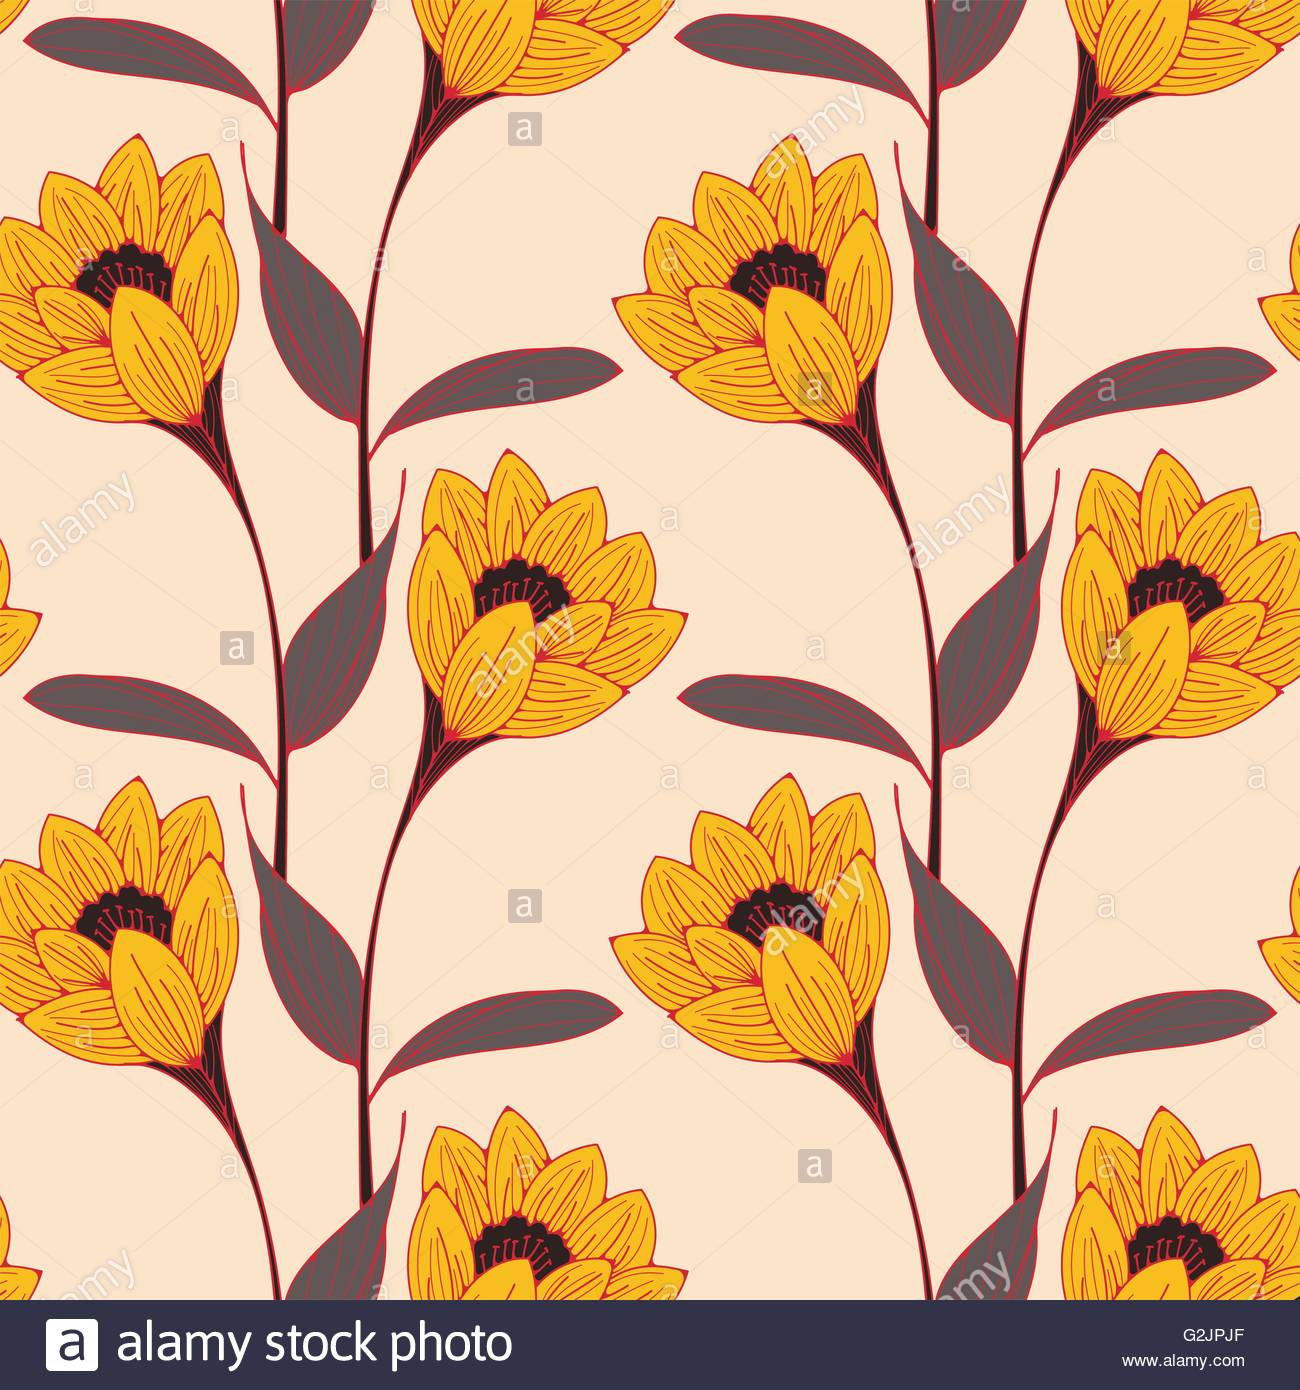 A vintage english style floral wallpaper seamless tiles with stock a vintage english style floral wallpaper seamless tiles with crocus like flowers in yellow black and red shades mightylinksfo